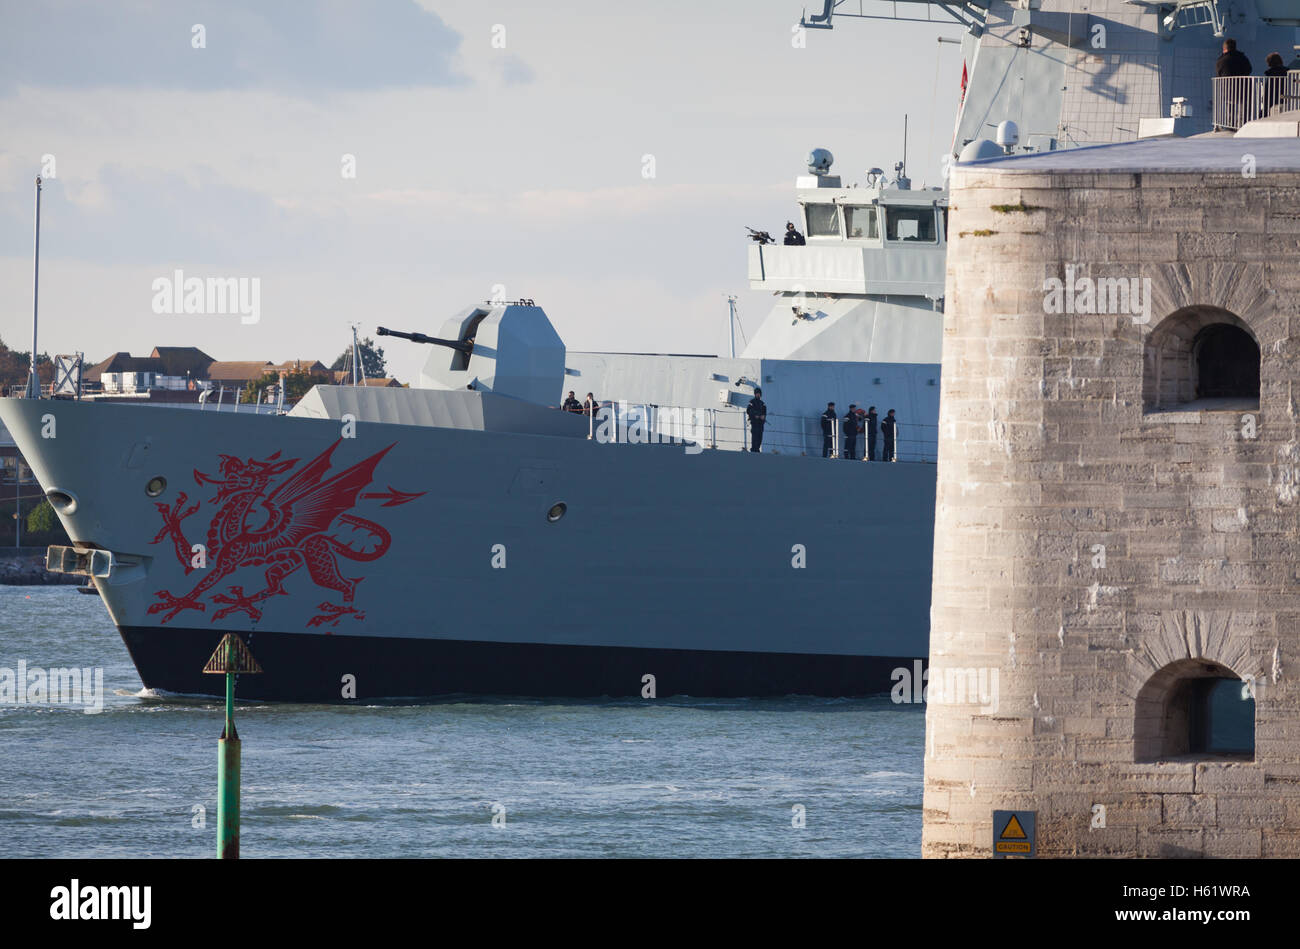 The Type 45 destroyer, HMS Dragon, leaving Portsmouth Harbour to intercept and escort two Russian corvettes sailing - Stock Image